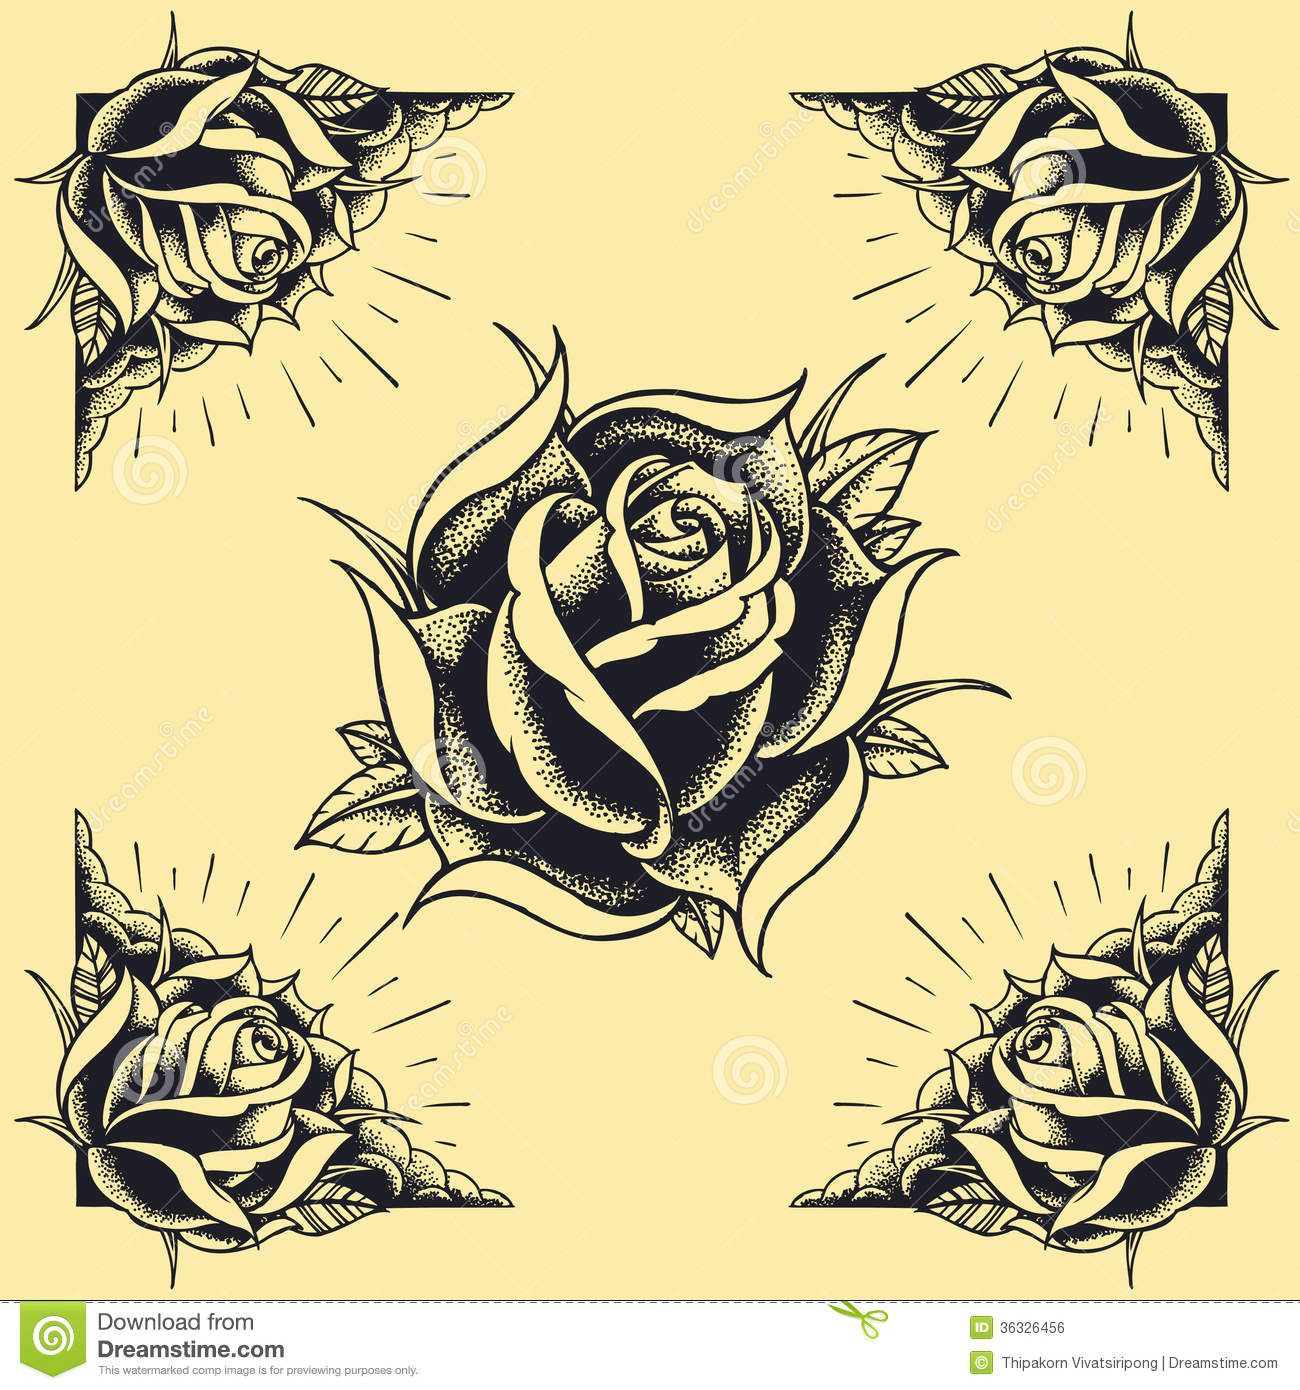 roses and frame tattoo style design set 02 royalty free stock image image 36326456. Black Bedroom Furniture Sets. Home Design Ideas